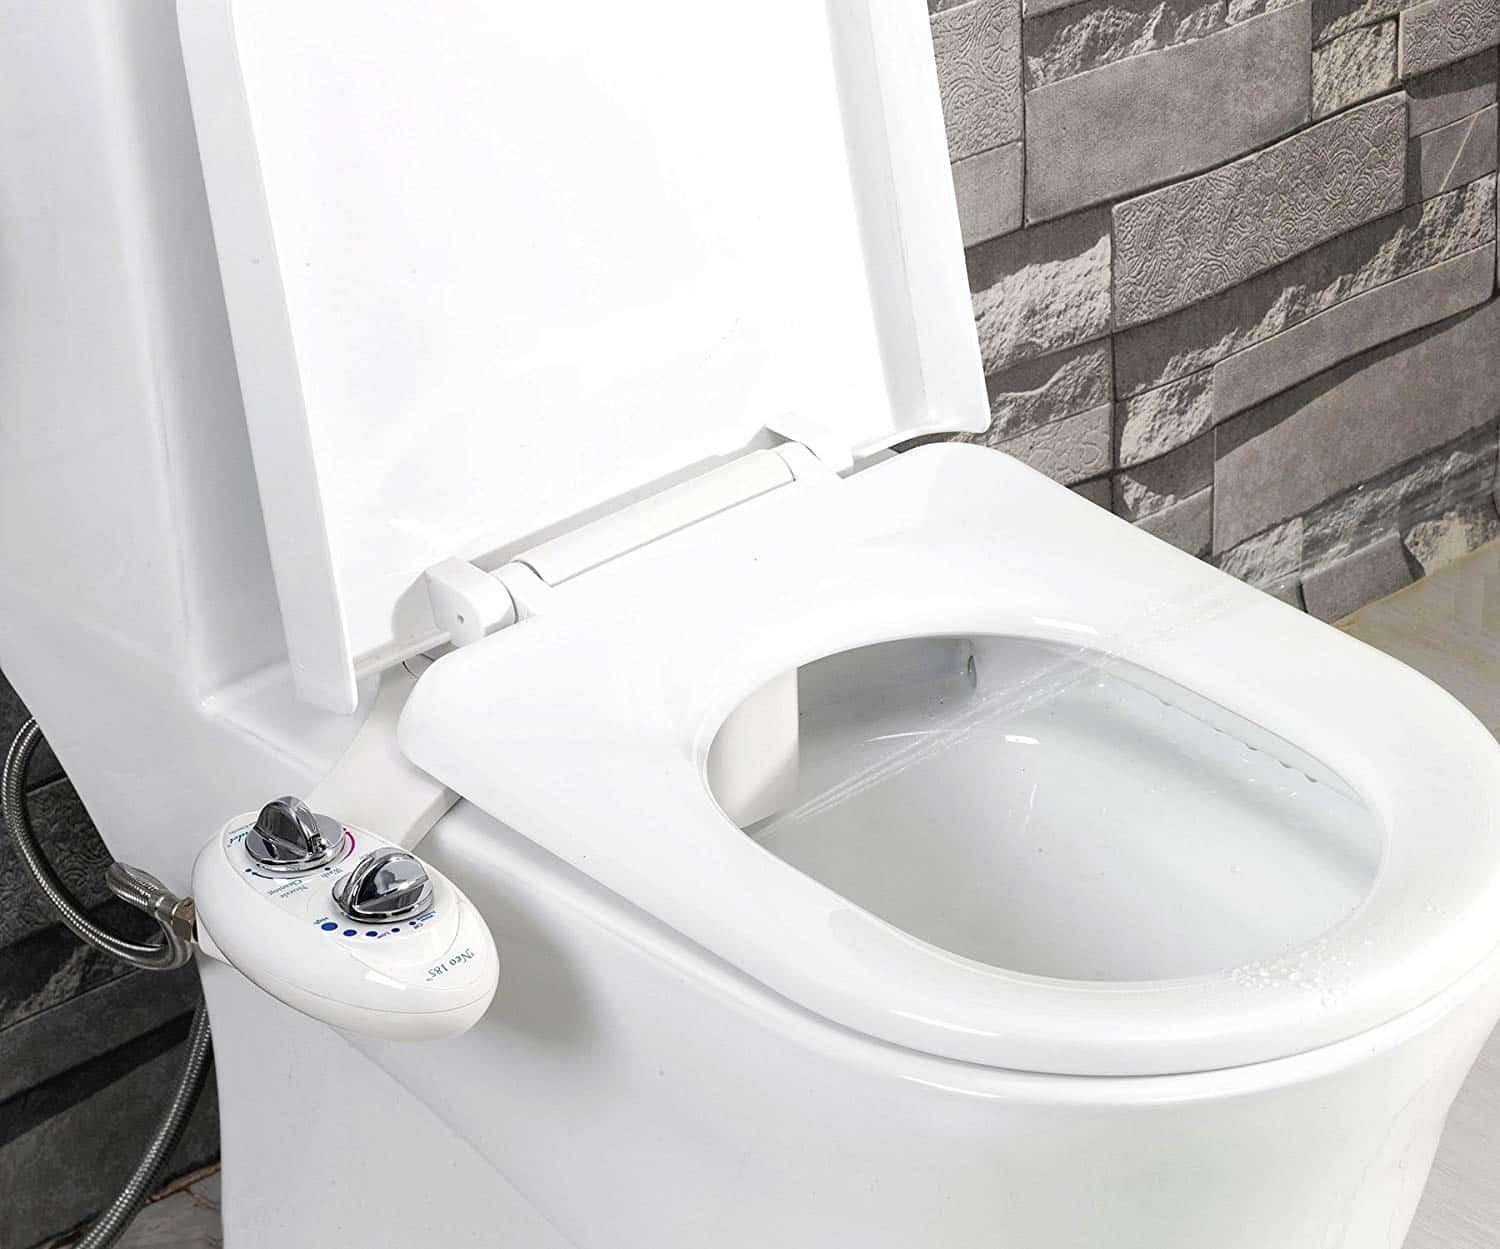 Fine Best Bidet Toilet Seats In 2019 Reviews Pdpeps Interior Chair Design Pdpepsorg